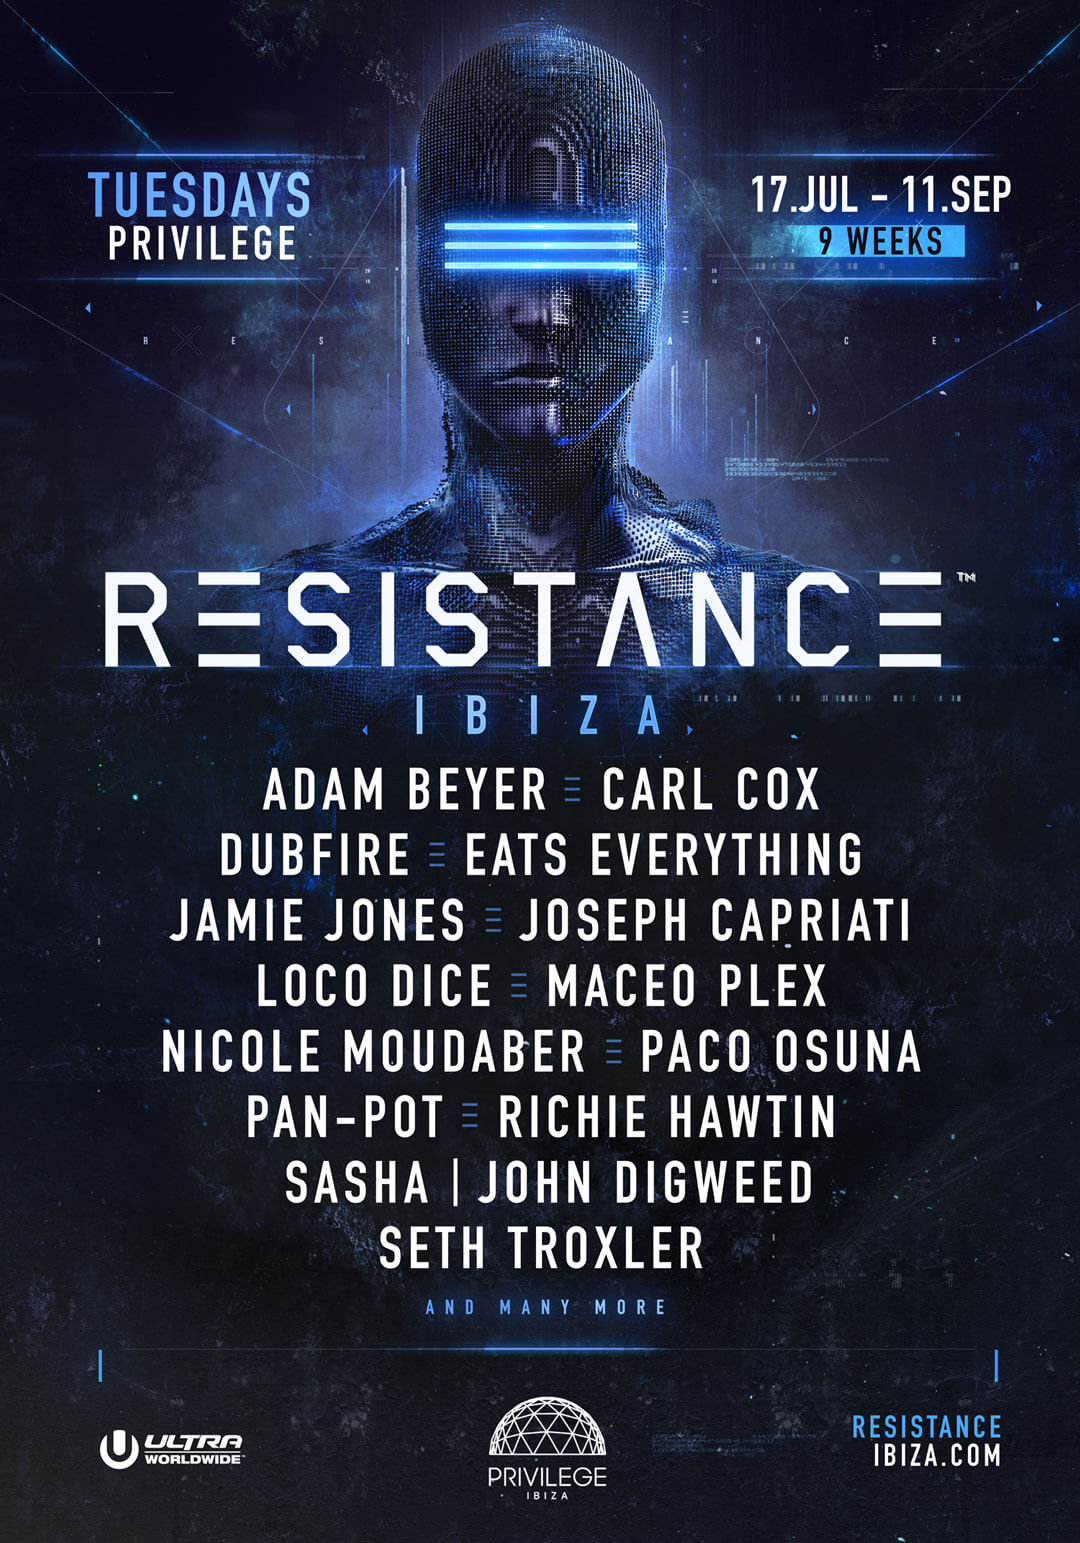 Resistance Ibiza Announces Headliners Promises Biggest Production Posted On December 17 2009 By Adam Beyer Carl Cox Dubfire Eats Everything Jamie Jones Joseph Capriati Loco Dice Maceo Plex Nicole Moudaber Paco Osuna Pan Pot Richie Hawtin